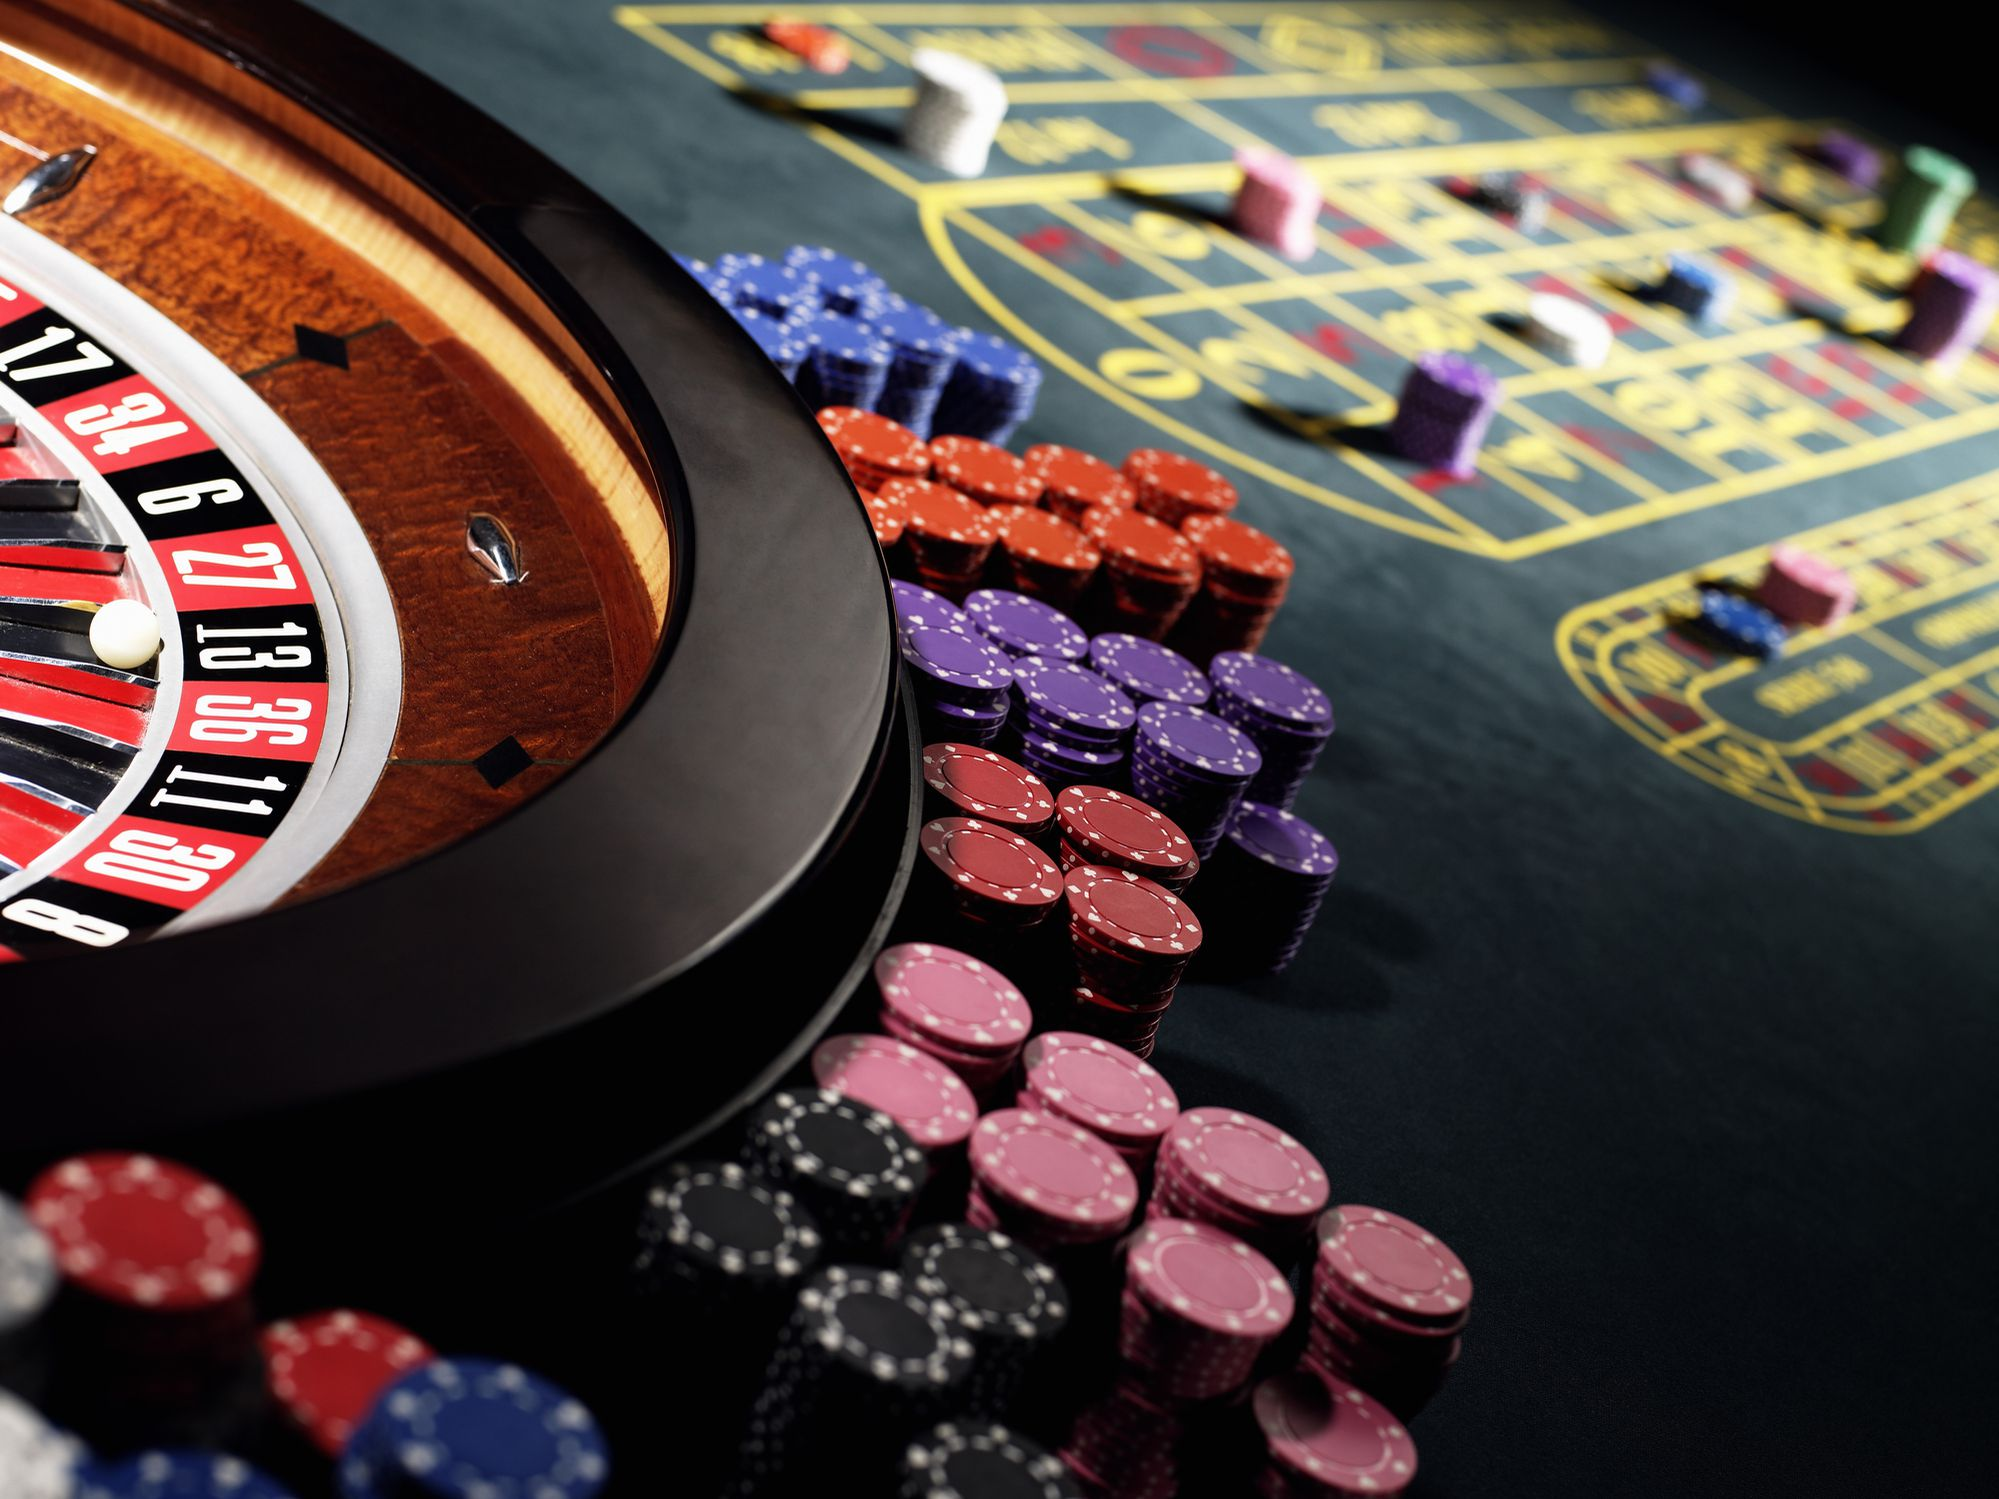 Easy tricks on how to play online slots for beginners